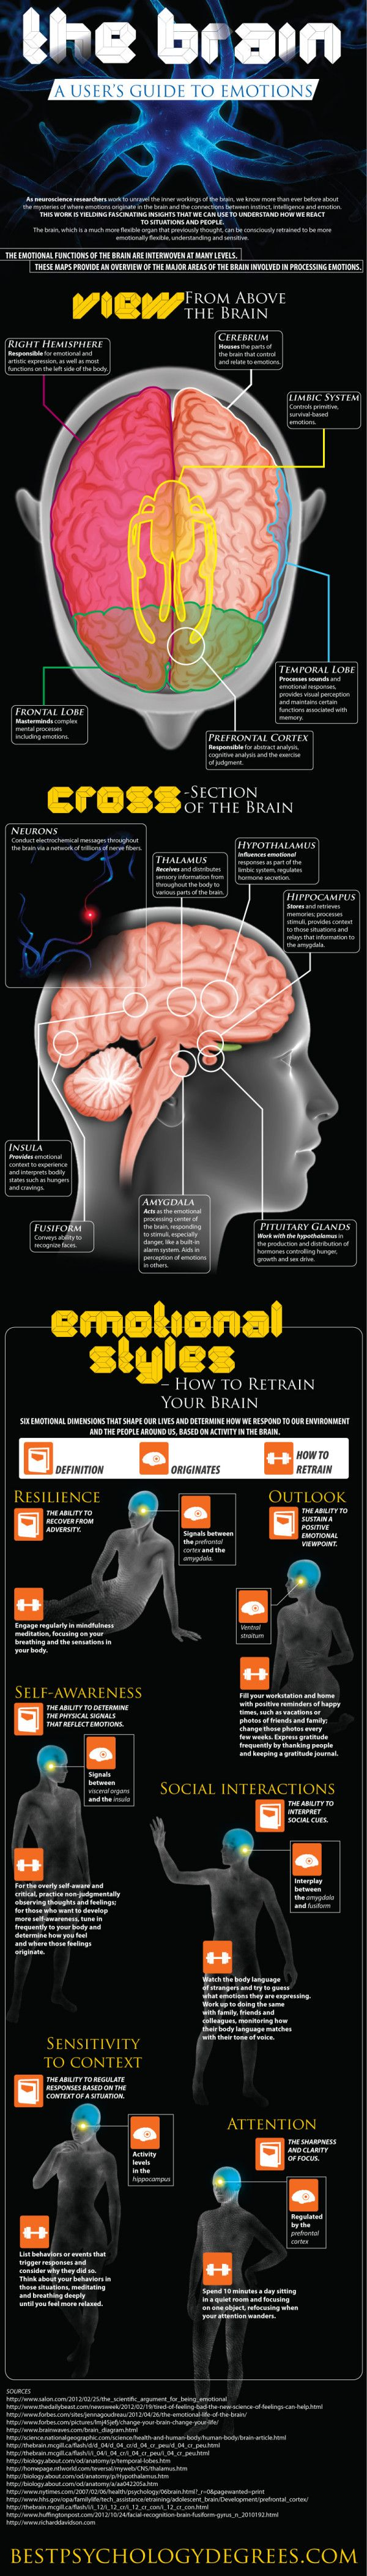 Though culture teaches us that emotions come from the heart, science knows it's just one of the many fascinating functions of the brain and are discovering more and more about this fascinating field every day.  This infographic from BestPsychologyDegrees takes a closer look at the research and what we now know about the brain and emotions.  Via BestPsychologyDegrees.com							    		  							March 8, 2013									1 Reply  								  	    		  		Post navigation